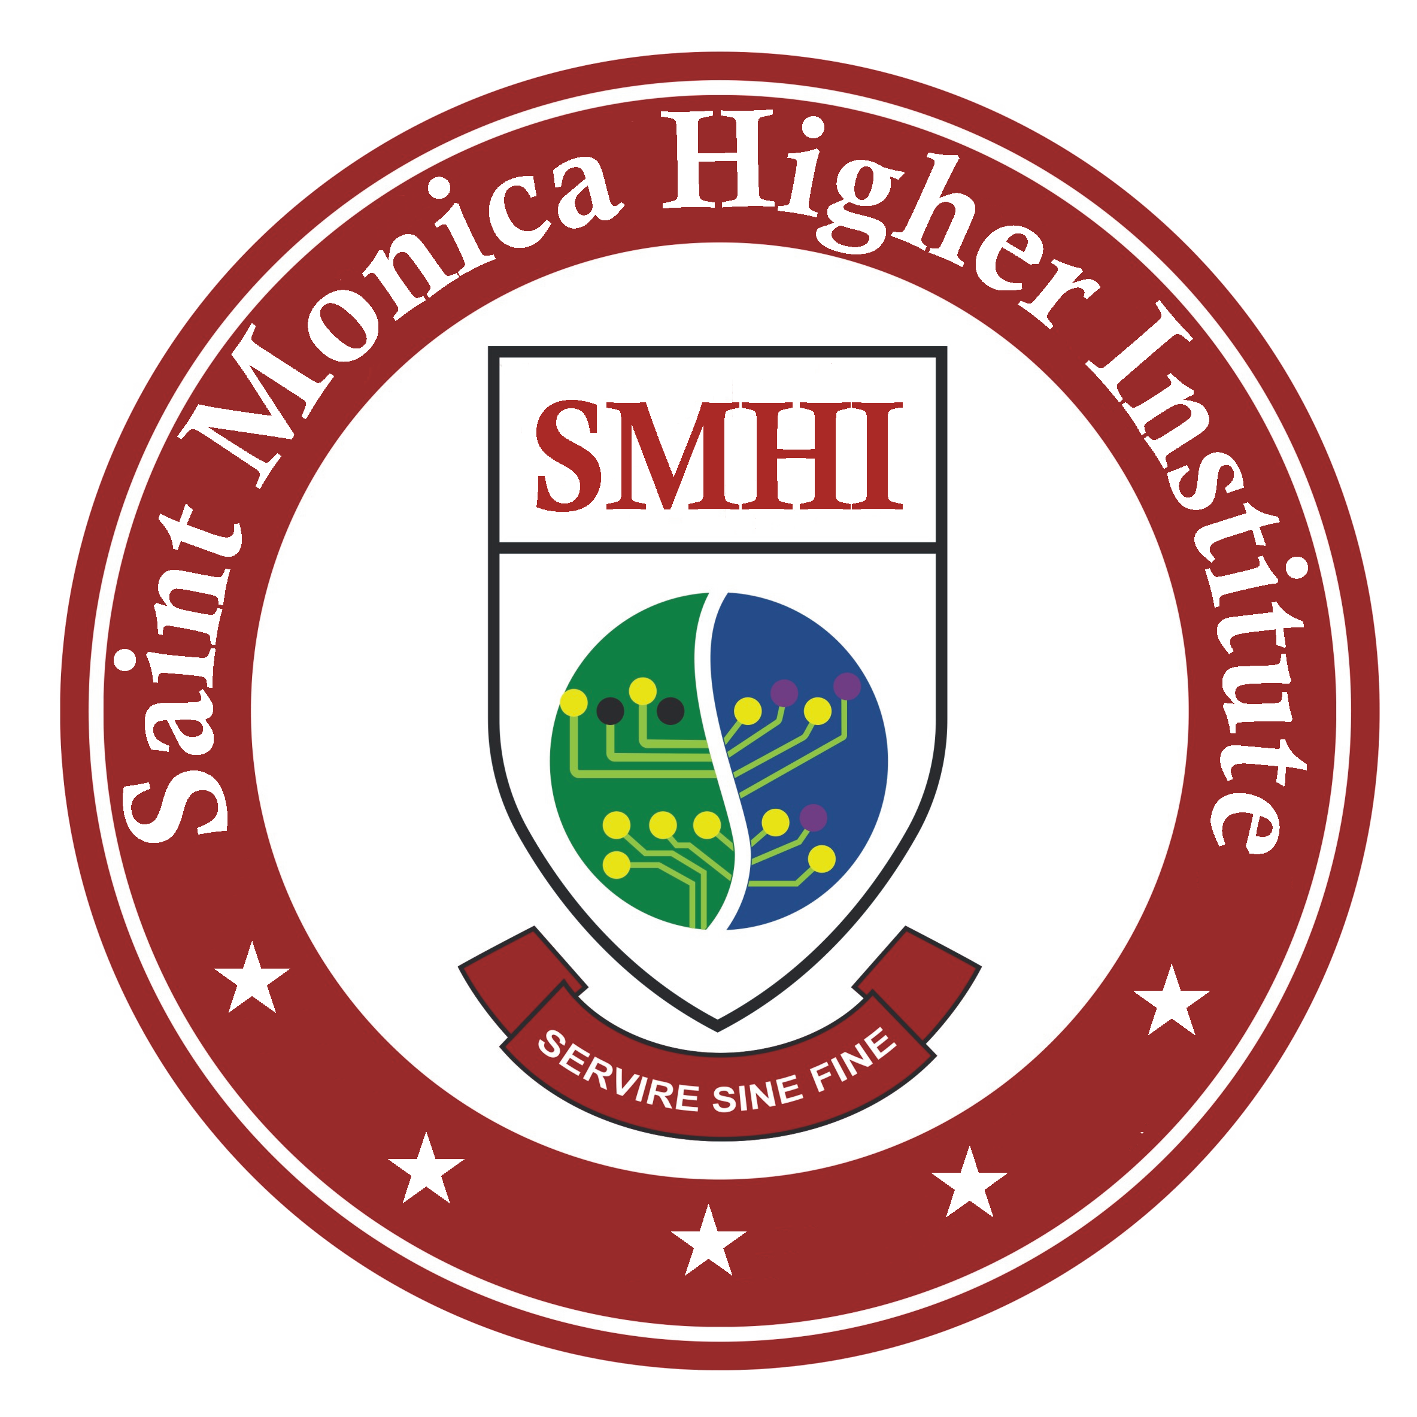 St Monica Higher Institute